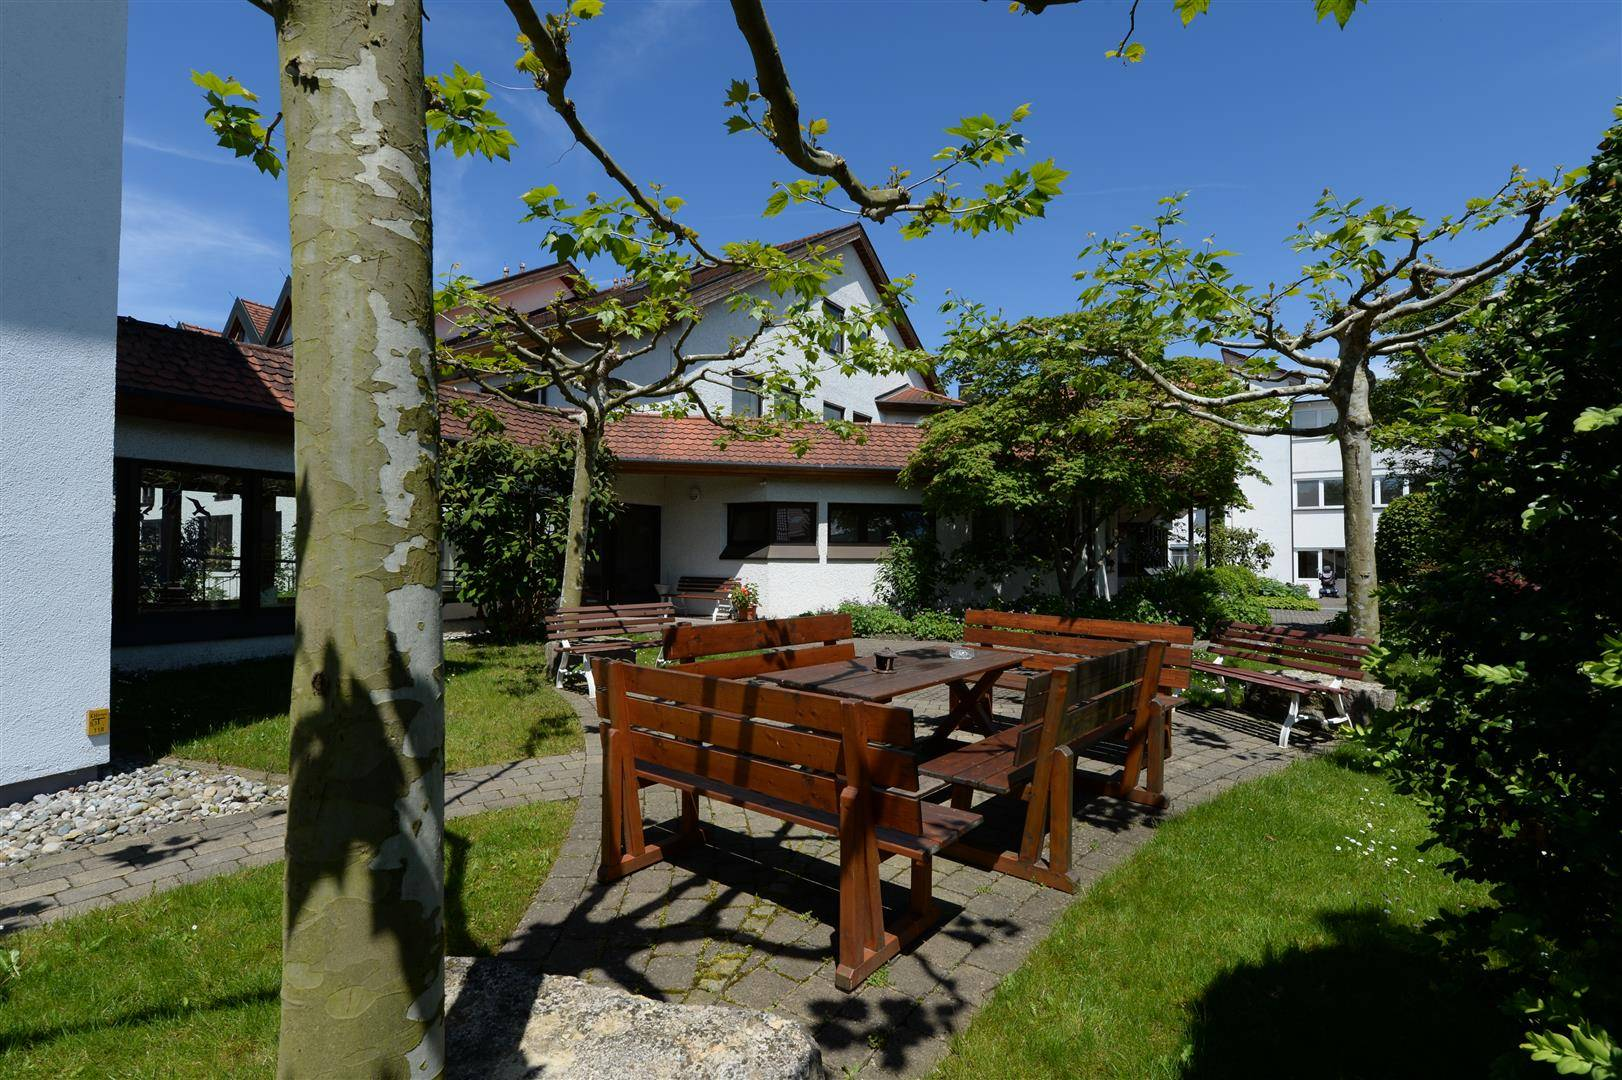 Gästehaus  St. Theresia in Eriskirch - Bild 10 - Pension Bodensee